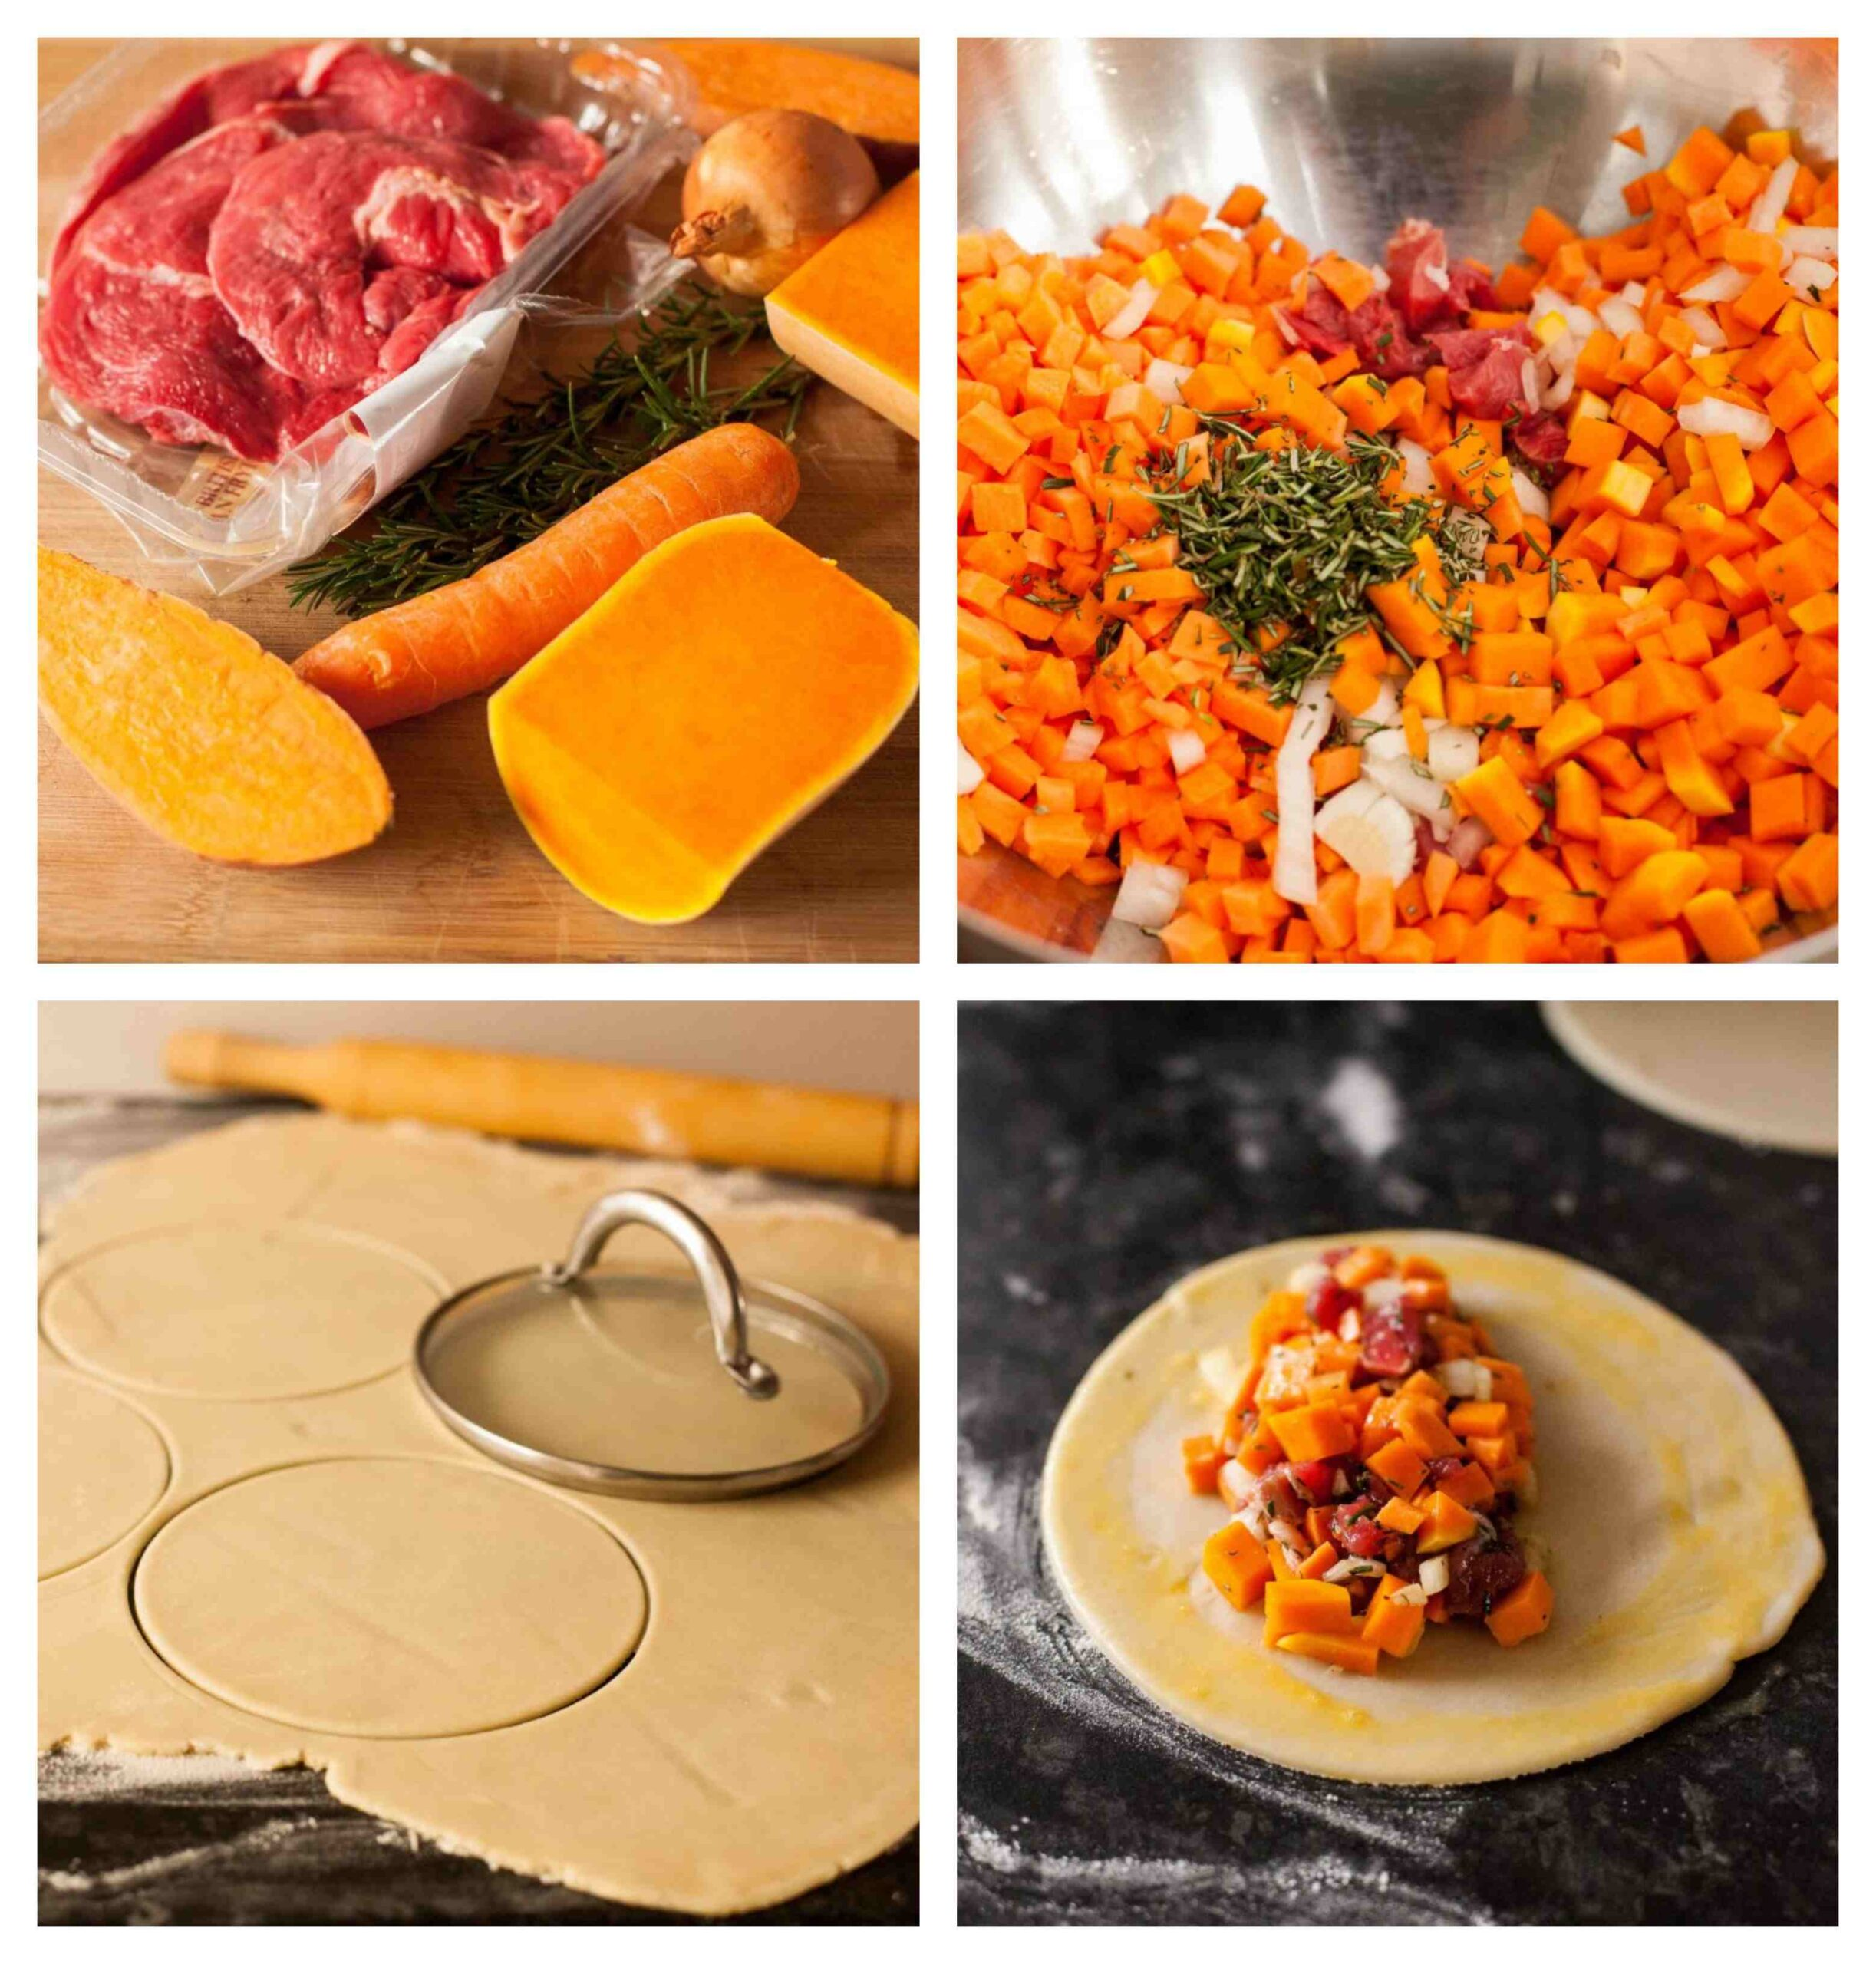 cornish pasty step by step process images